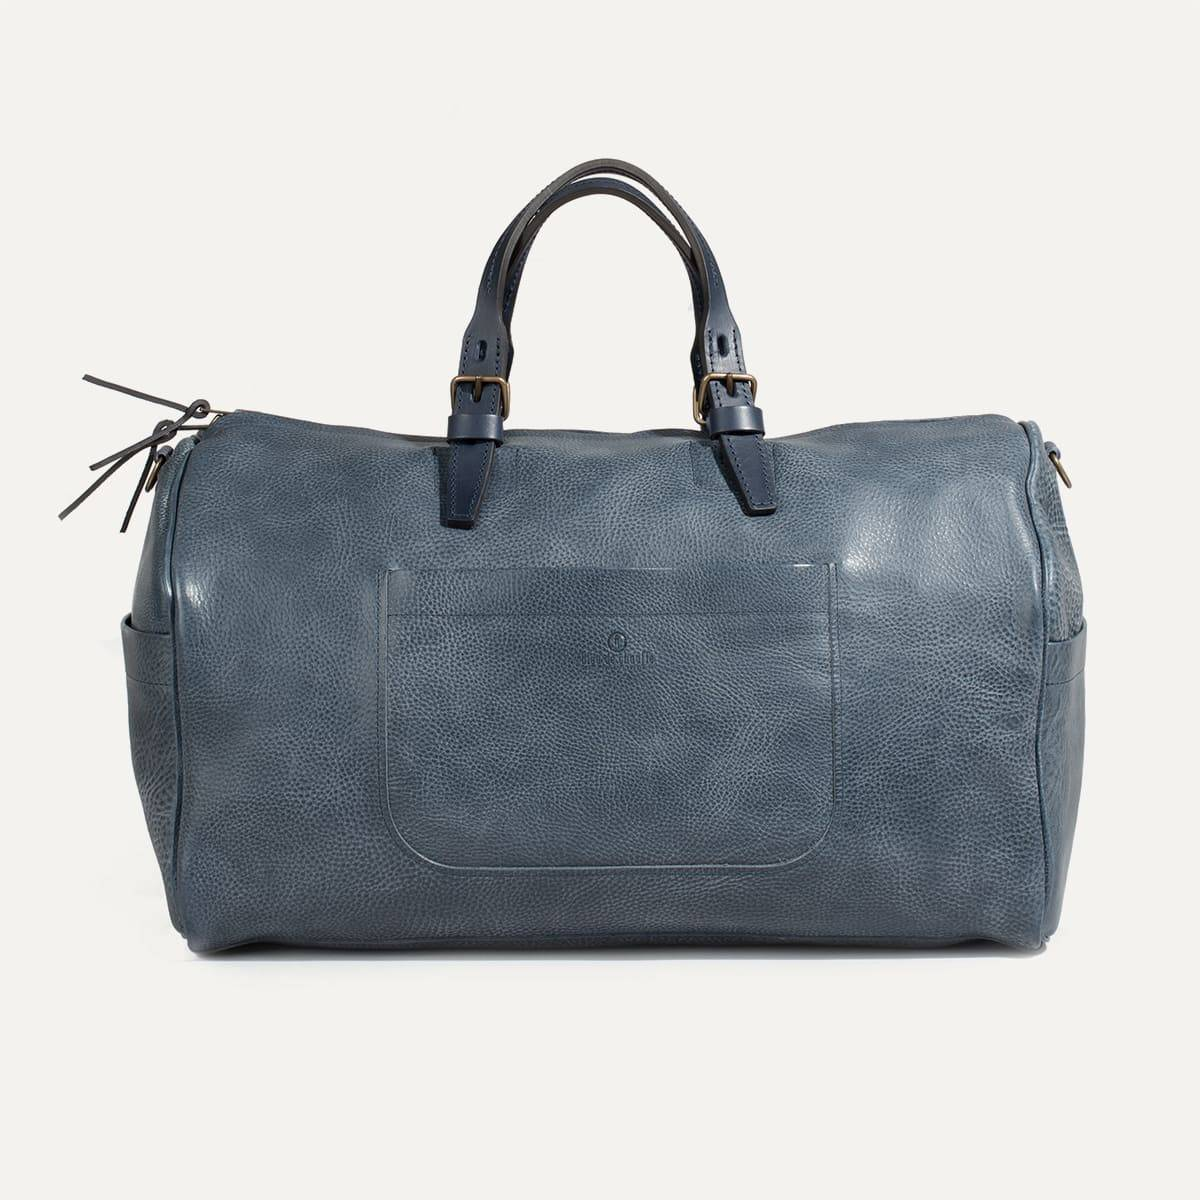 Hobo Travel bag - Indigo (image n°2)